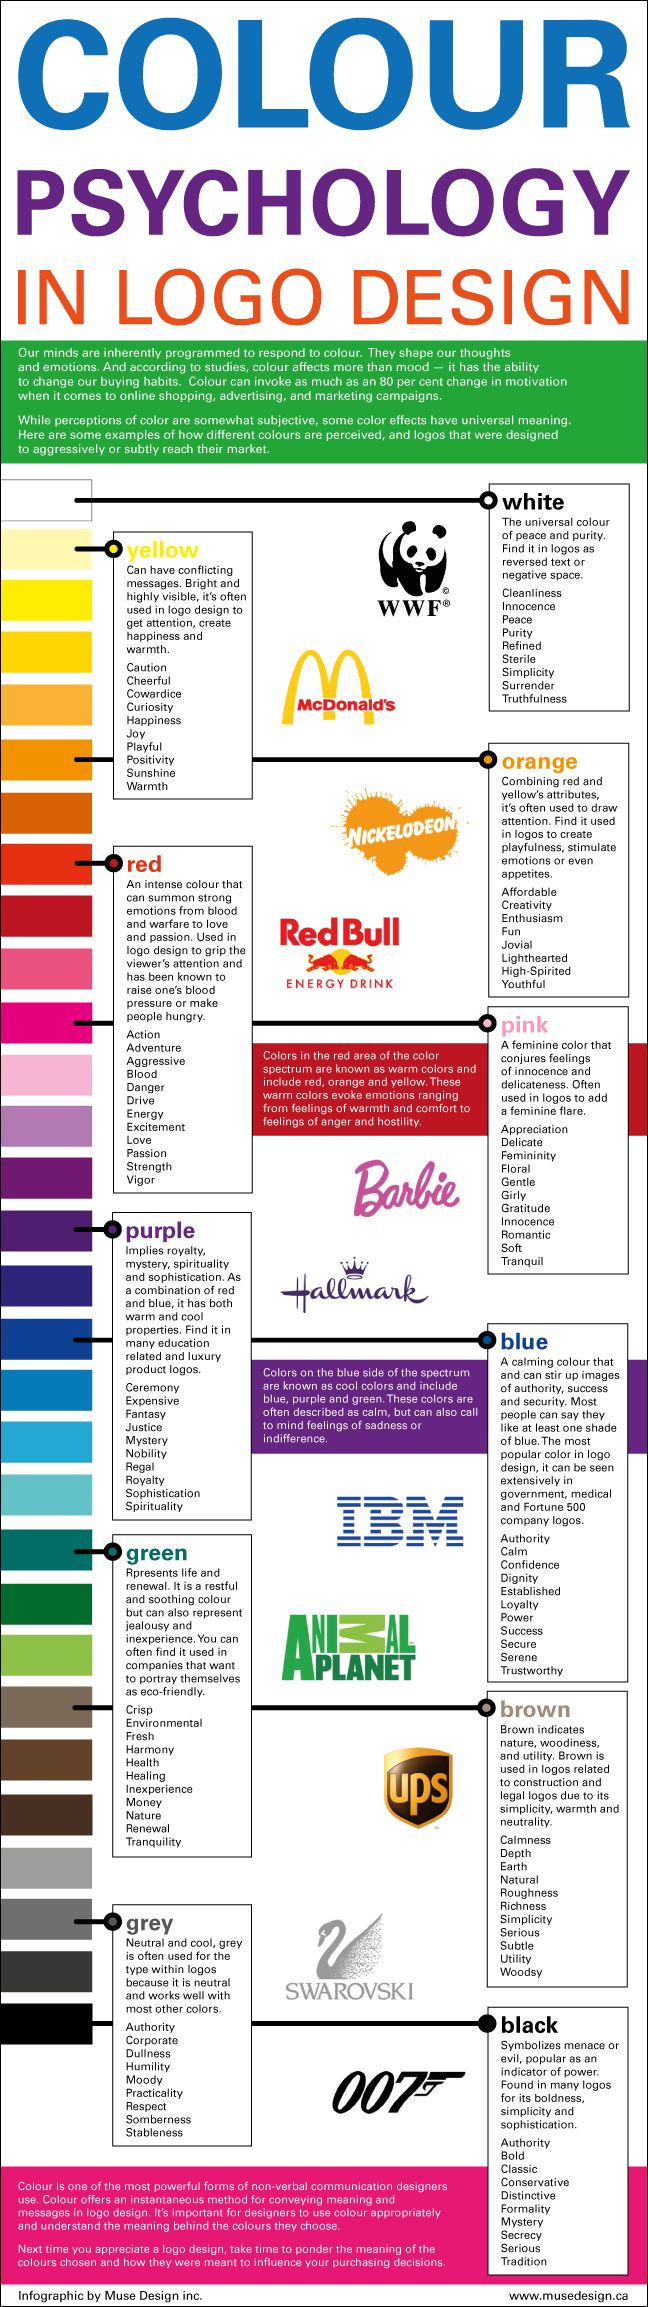 Cool...Color associated with your feelings. What if McD's logo went black? Would they rule the world?! LoL!